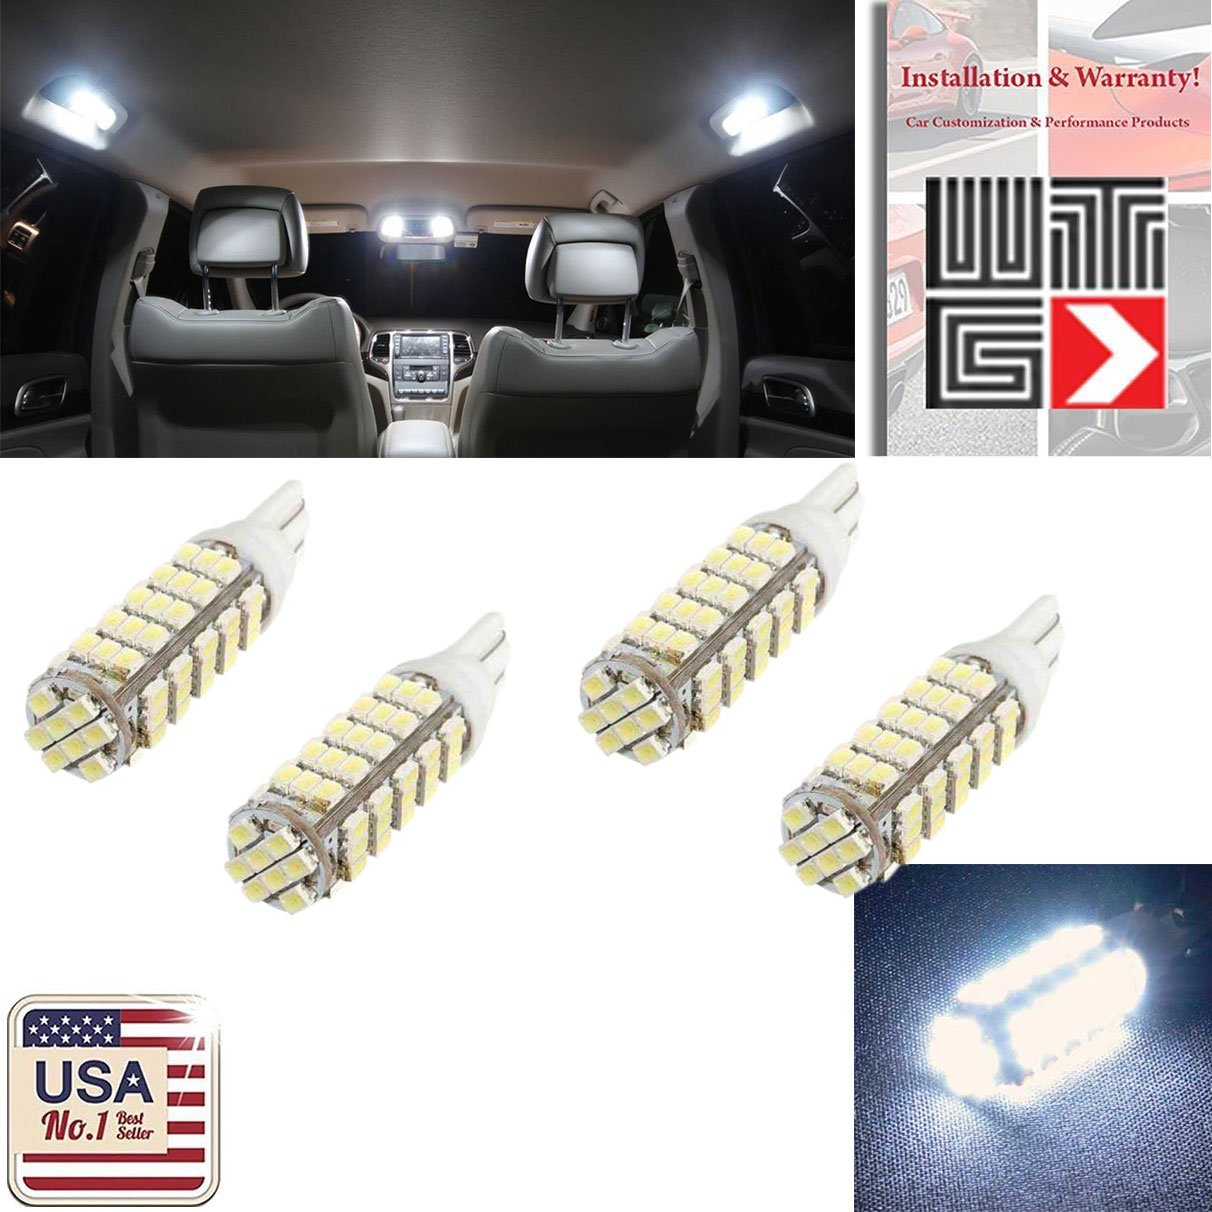 Vito 4x Super Bright White 6000k T10 Wedge 68 Smd 3020 2003 Saturn Ion Dash Lights Led Light Bulbs W5w 2825 158 192 168 194 For Car Boot Trunk Map Number Plate